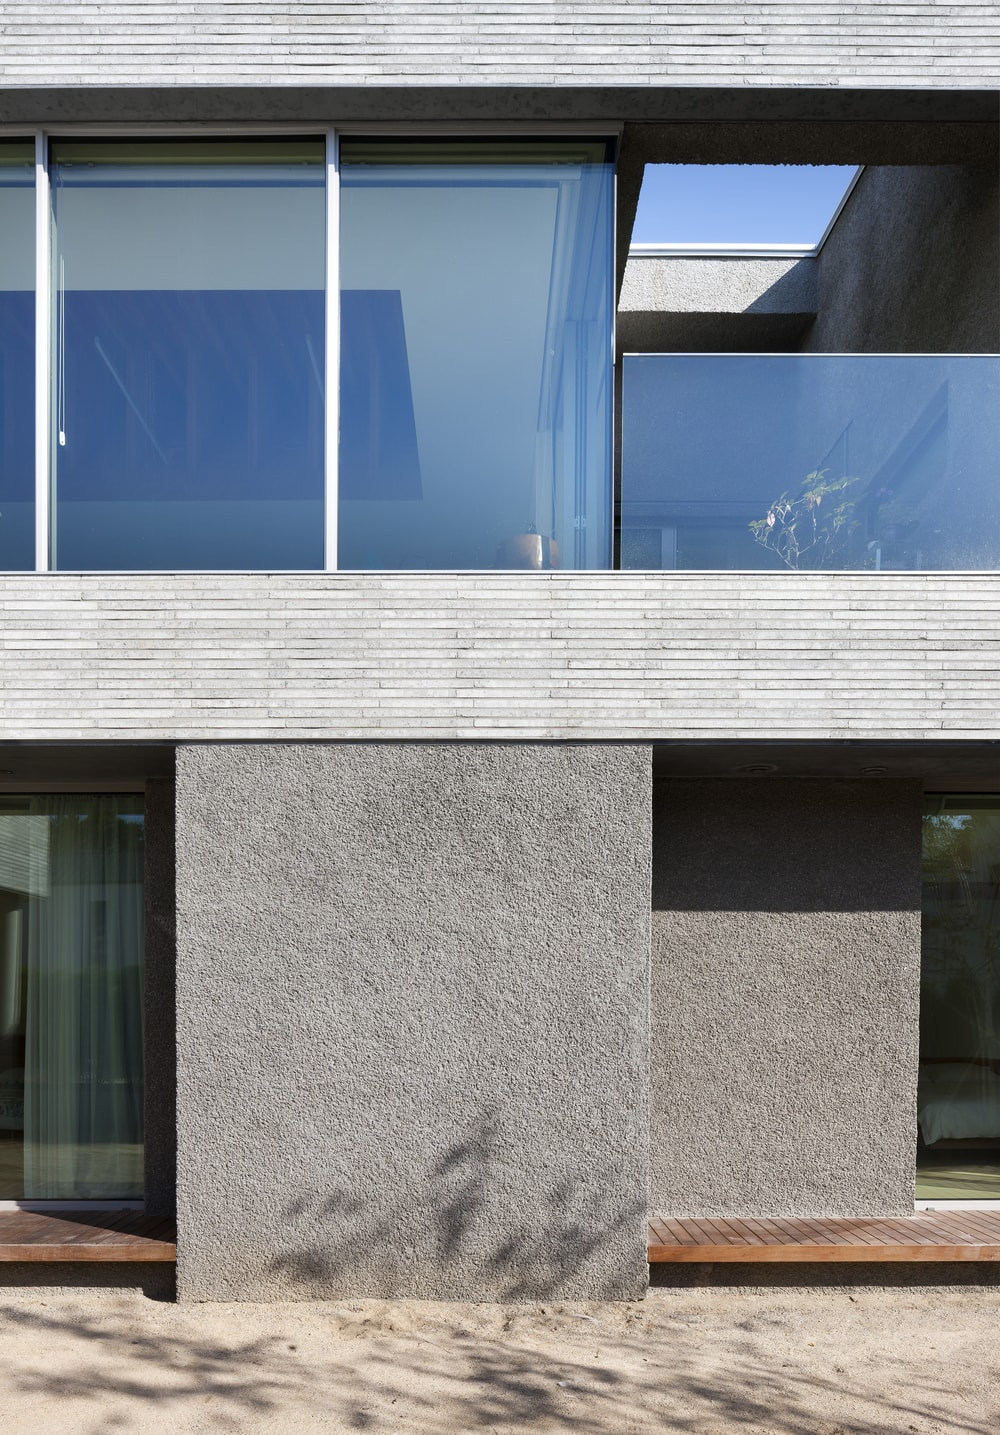 This is a close look at the exterior of the house showcasing the different tones and textures as well as the glass walls of the upper level.